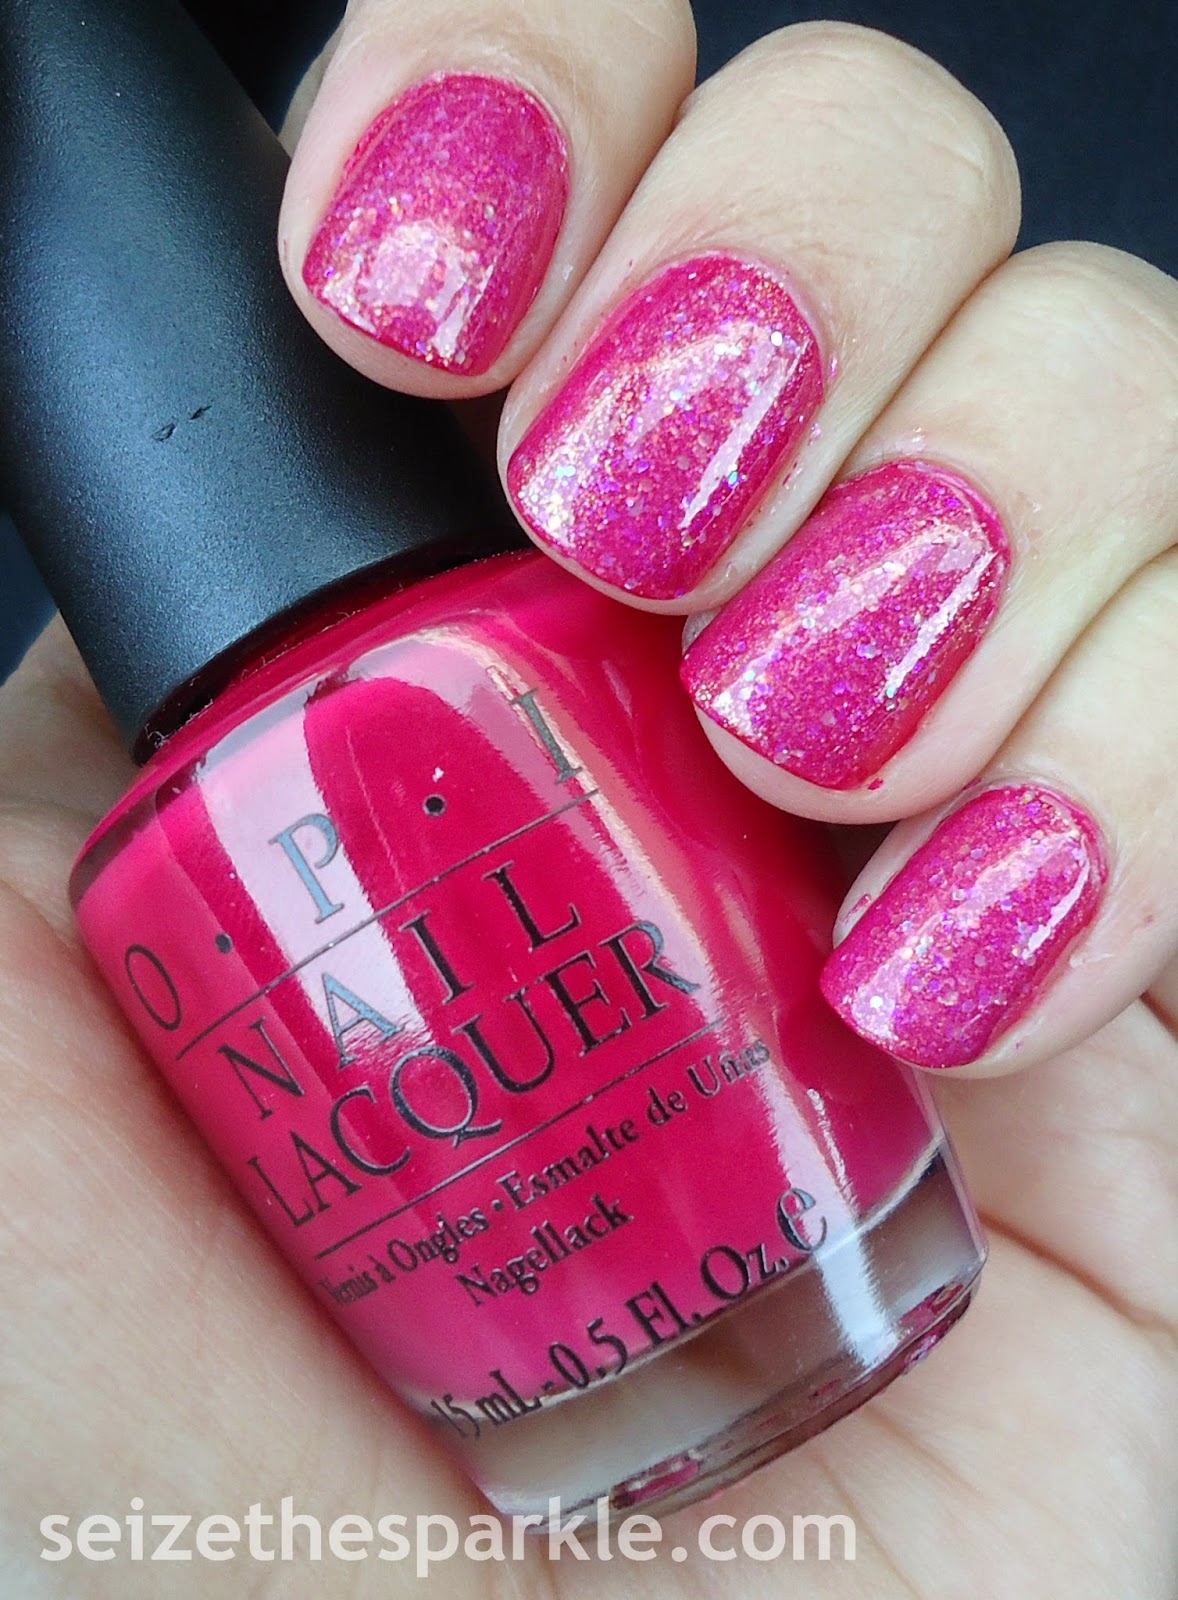 Jelly Glitter Sandwich in Pink